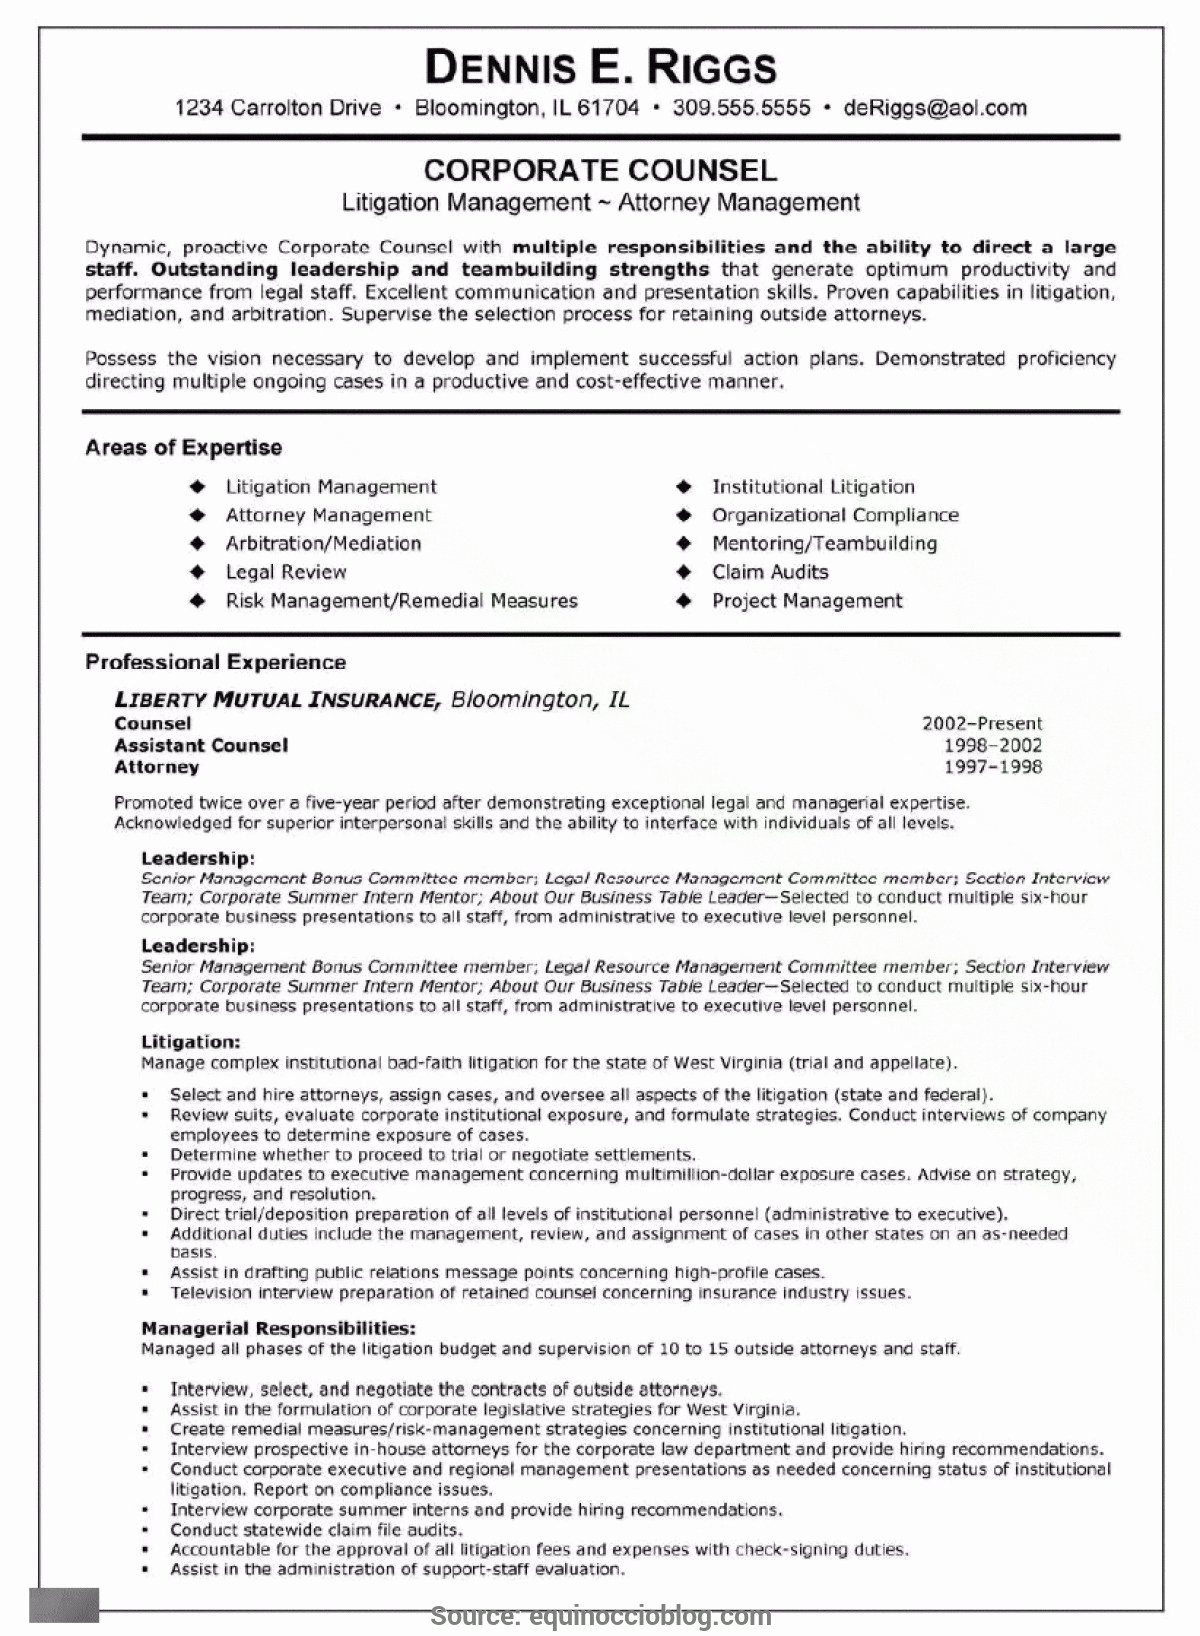 Areas Expertise Resume Examples